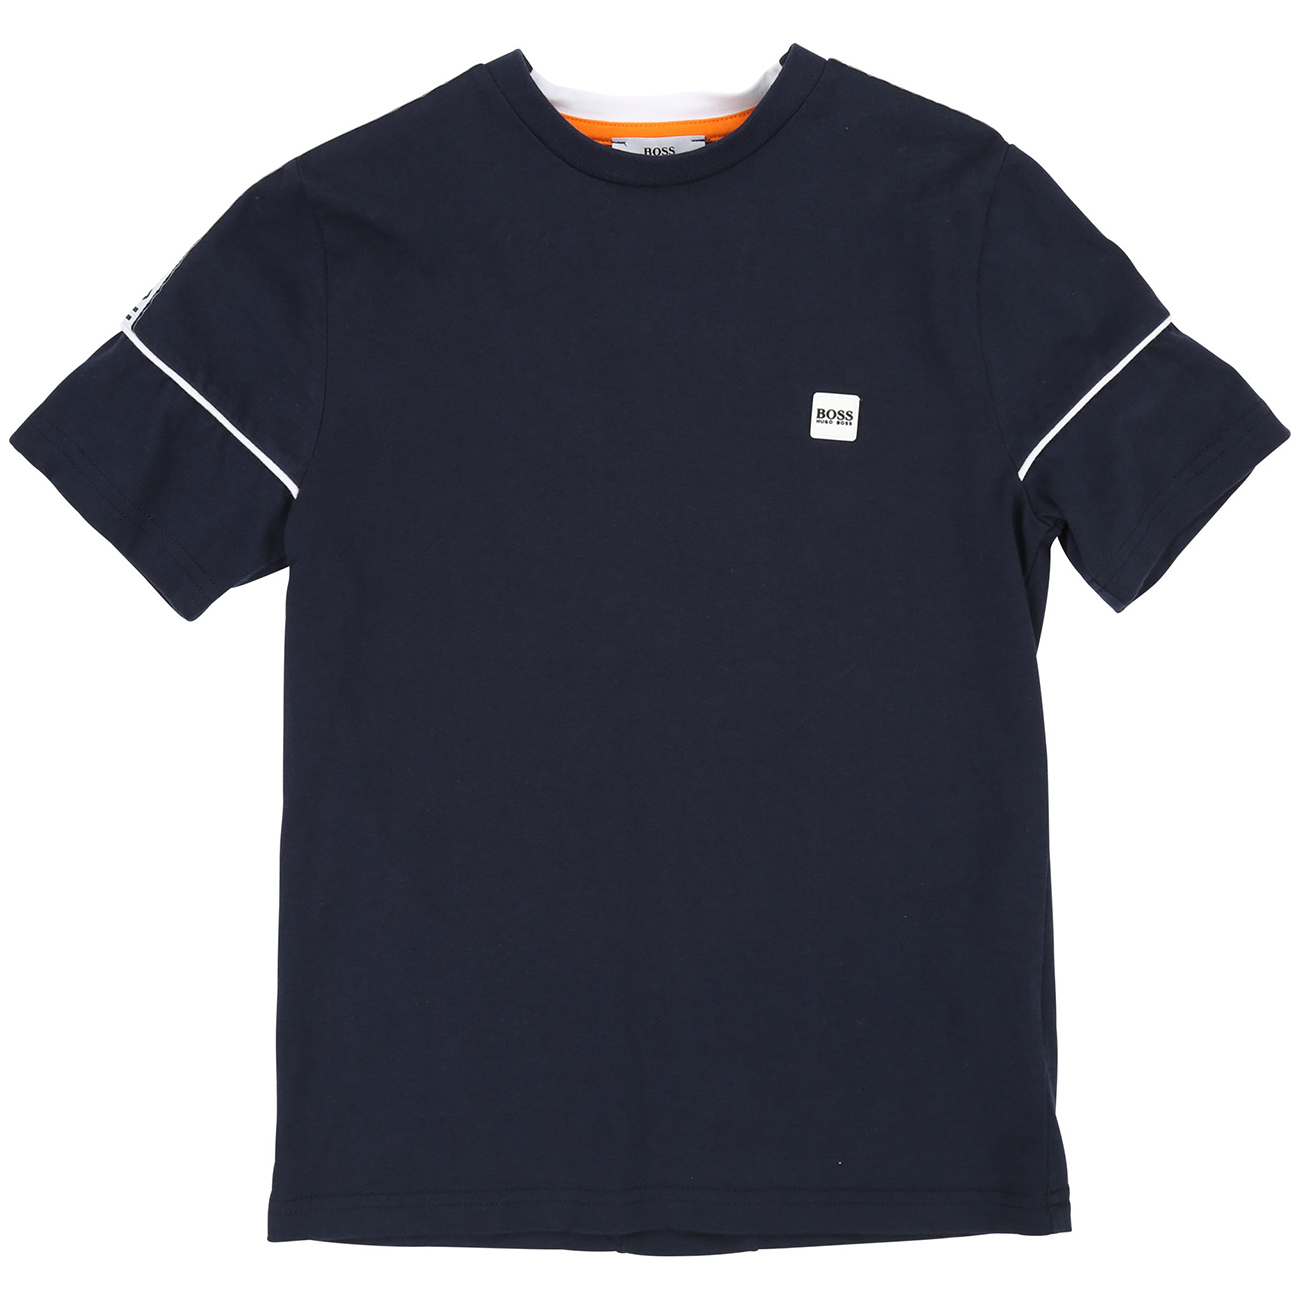 Hugo Boss Boy Short Sleeves Tee-shirt Navy